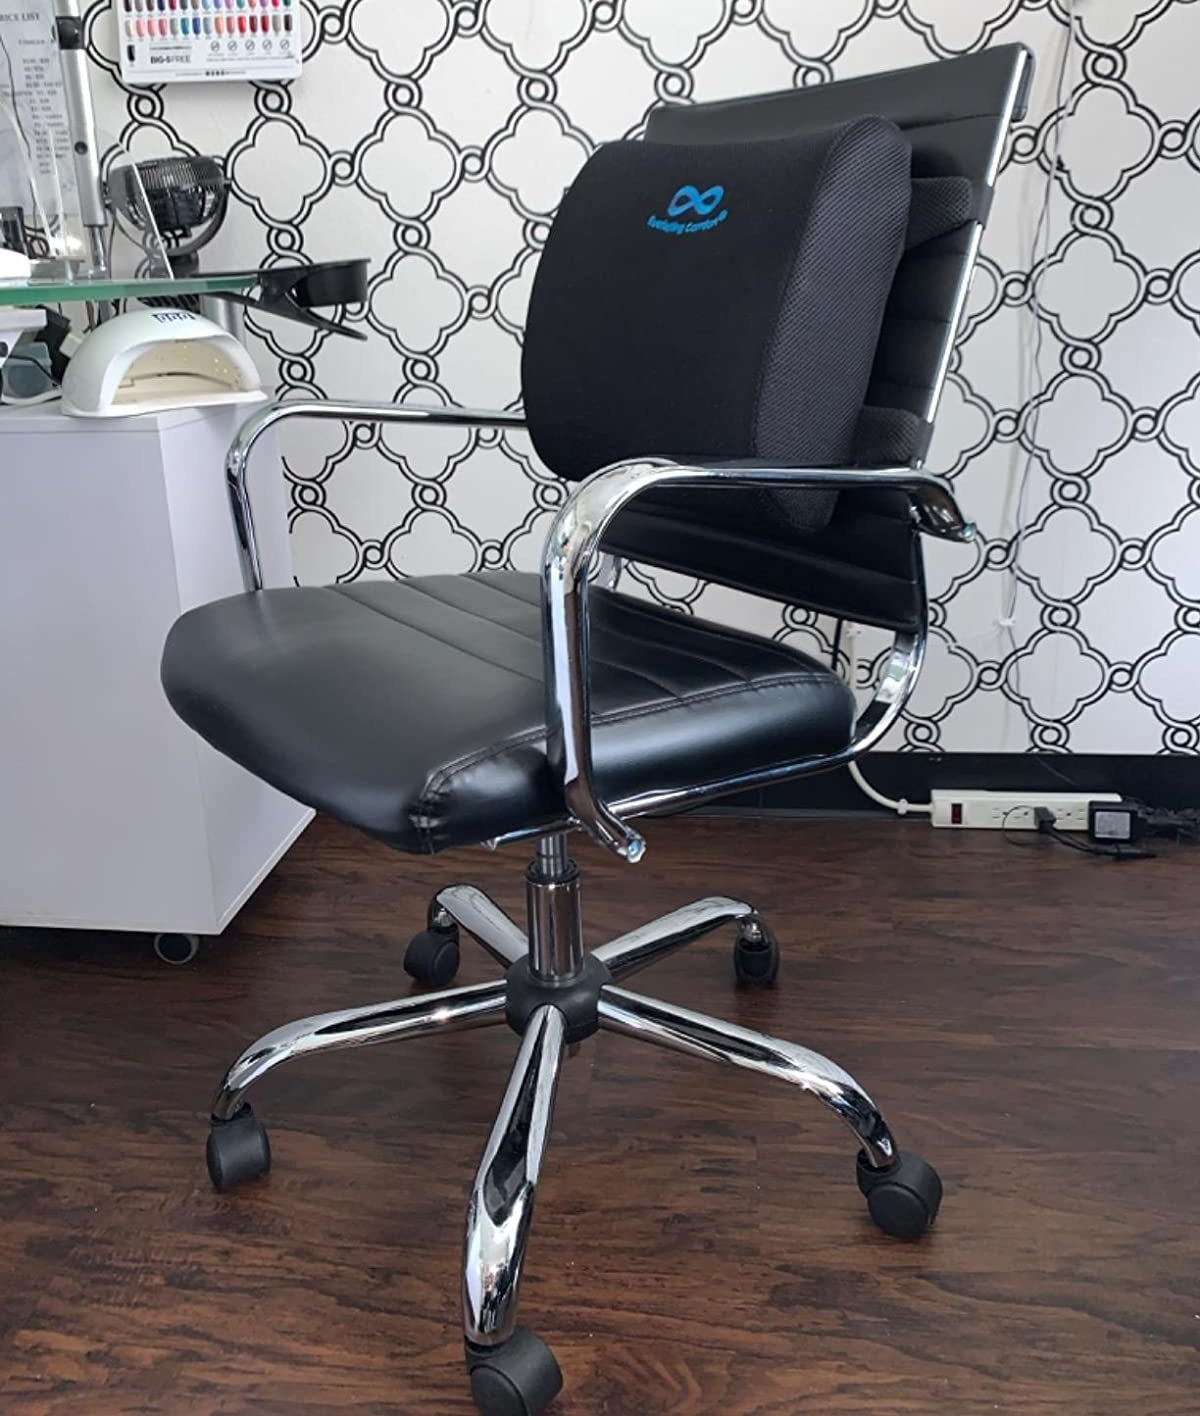 A reviewer photo of a black leather office chair with the lumbar support pillow strapped to the back